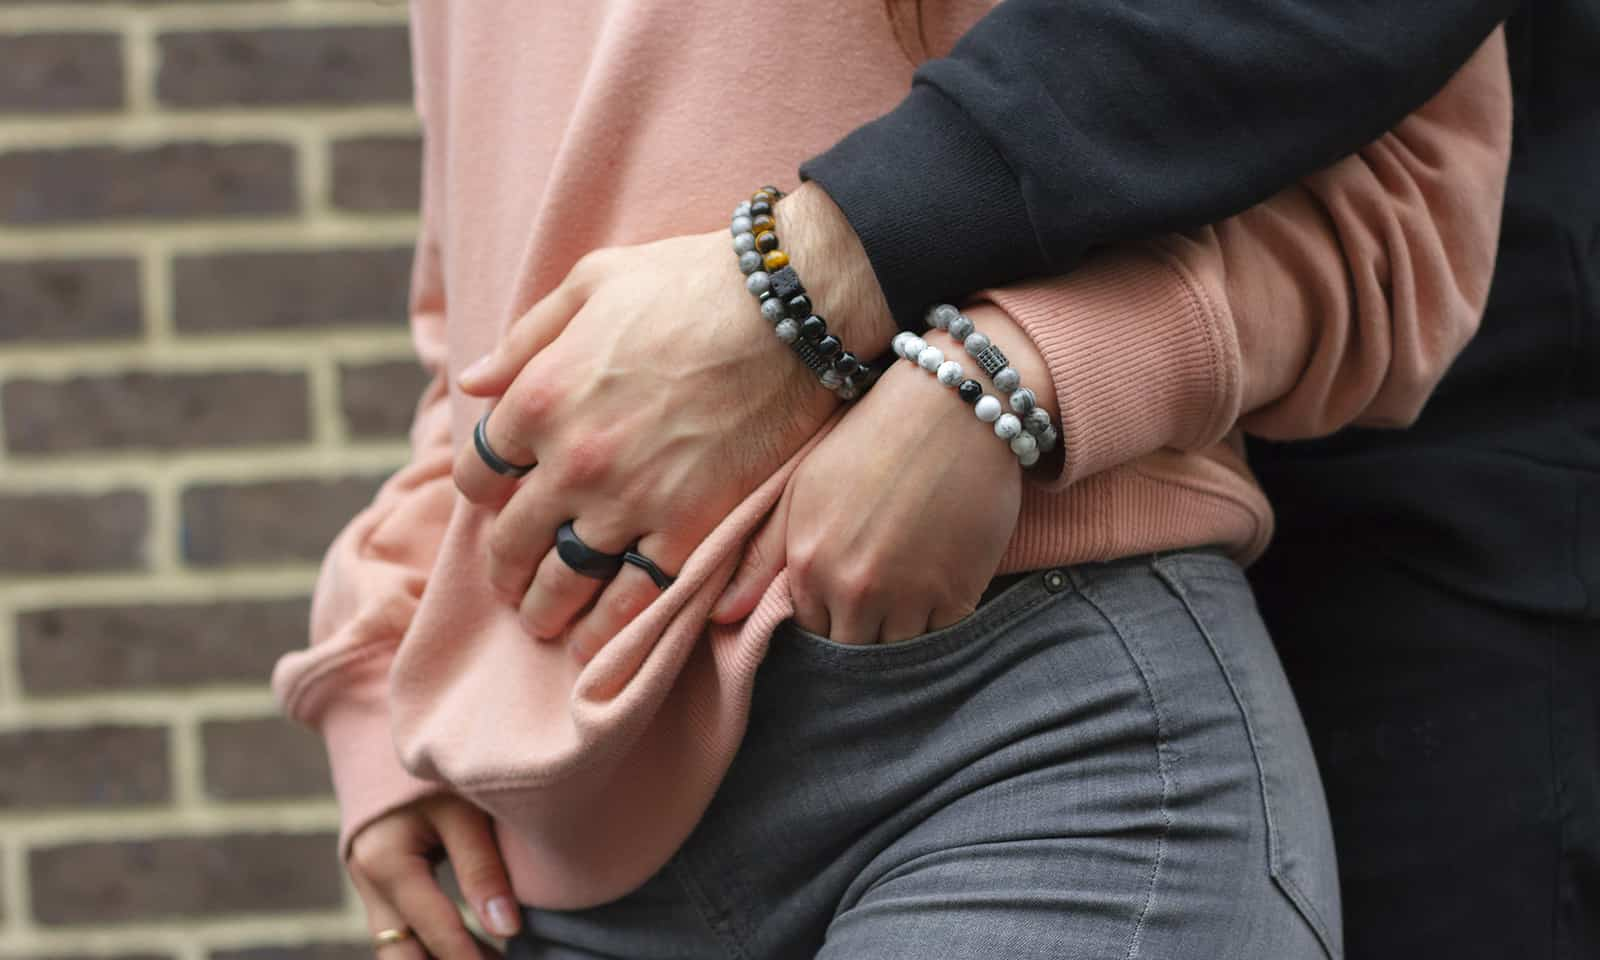 couples-bracelet-with-crystals-heal-relationship-main-image